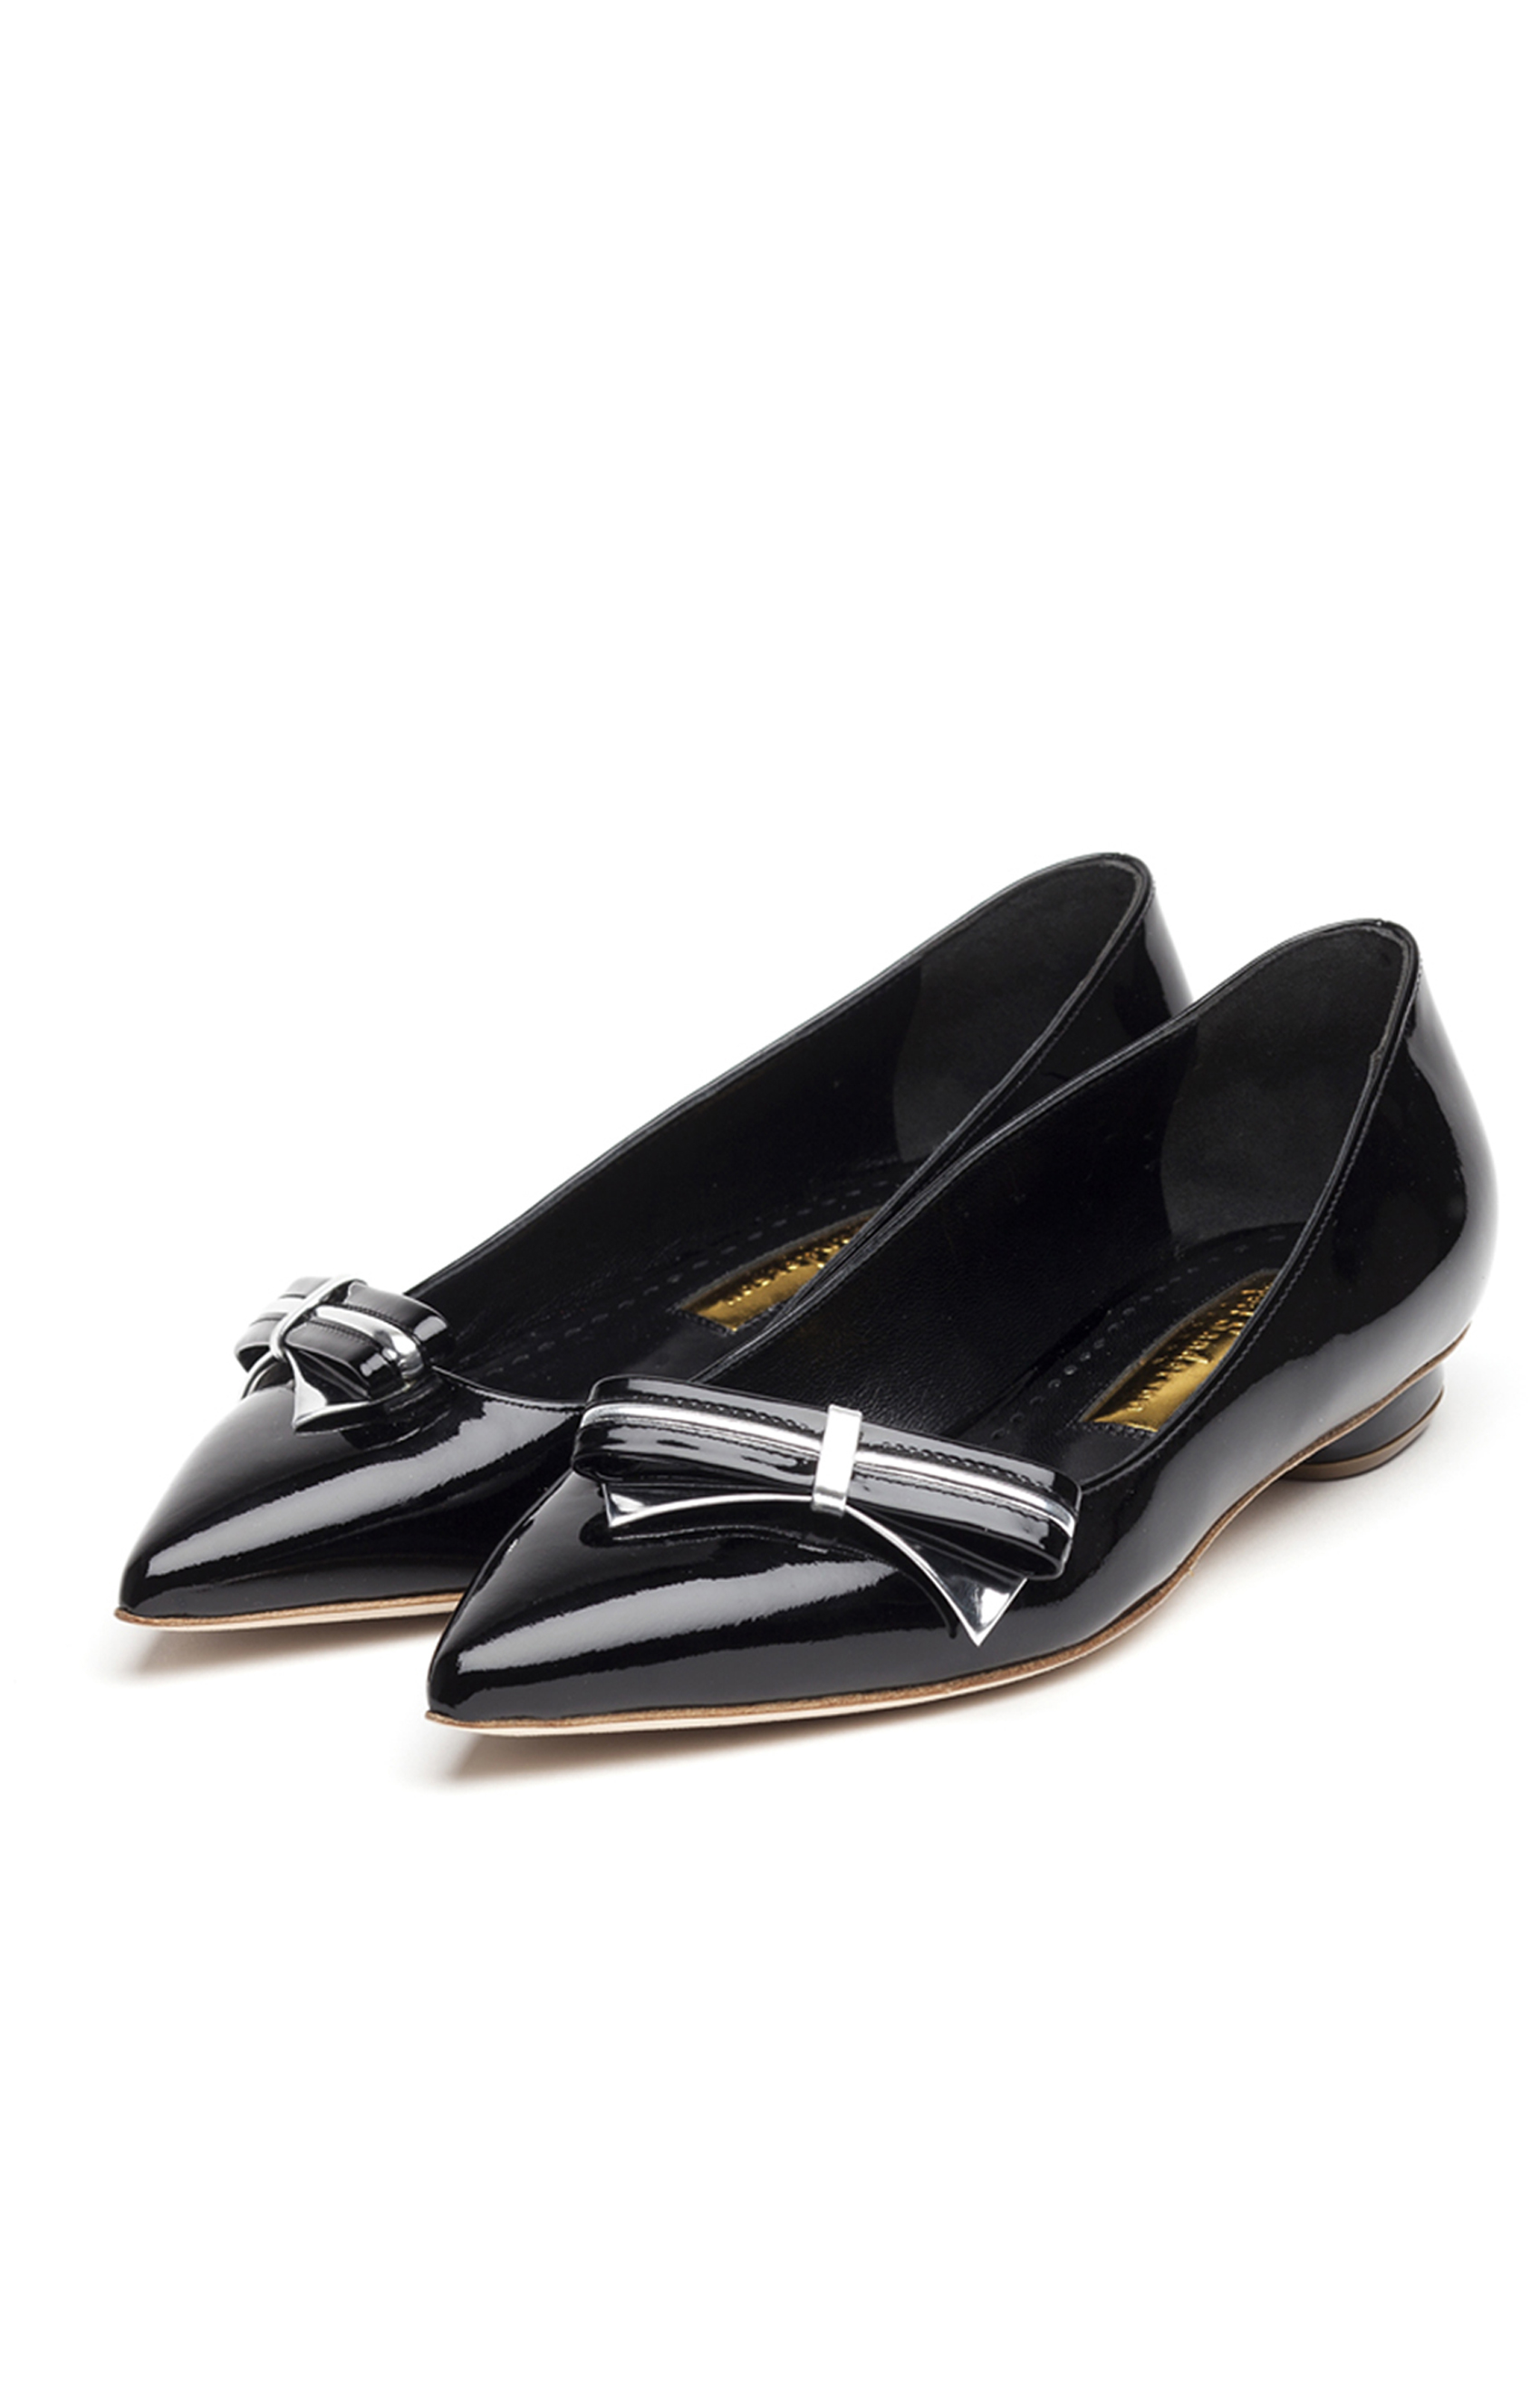 Rupert Sanderson<br>Verona Black patent body - black patent and silver mirror bow PAIR